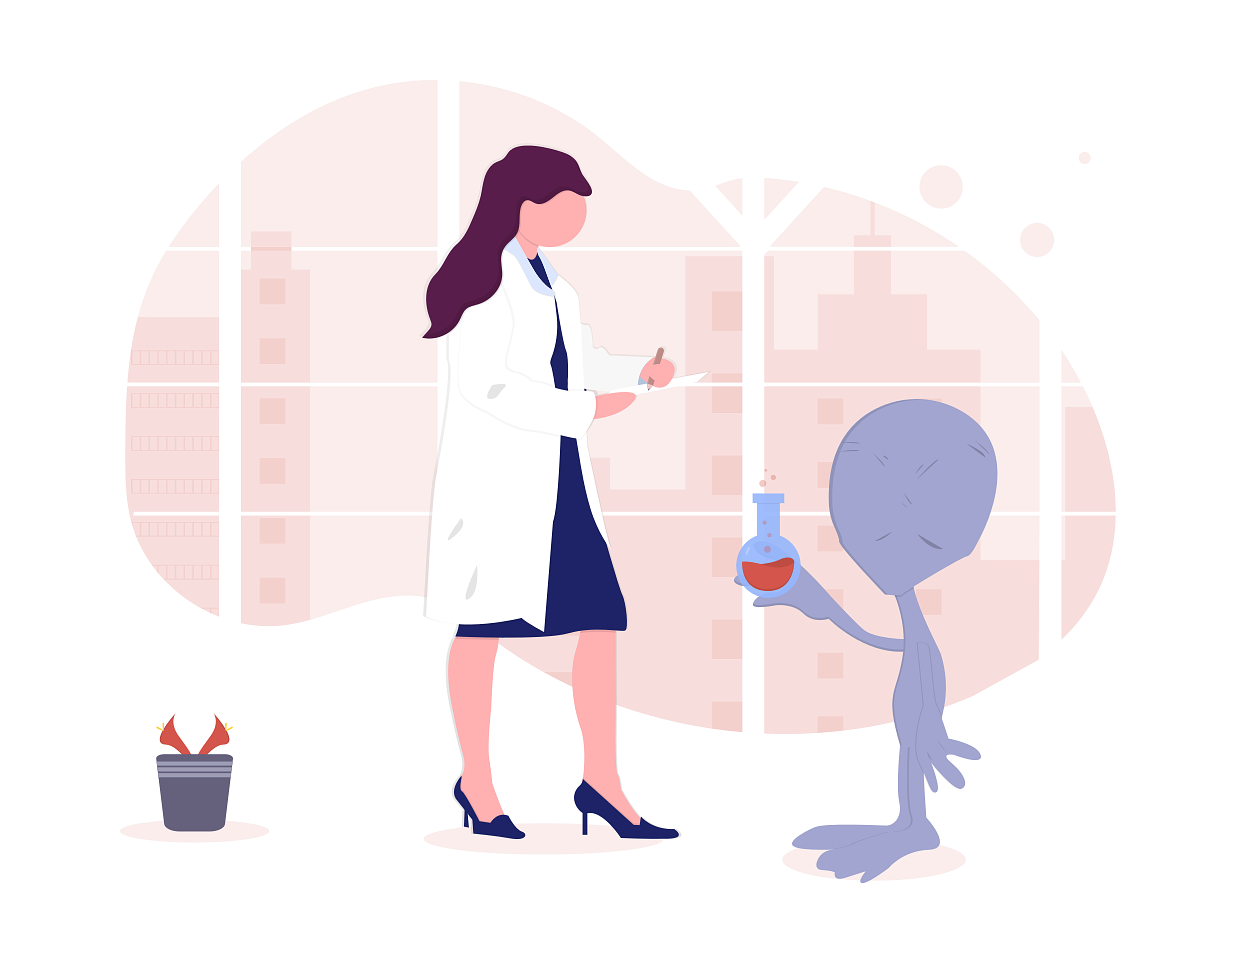 undraw_alien_science_nonm.png